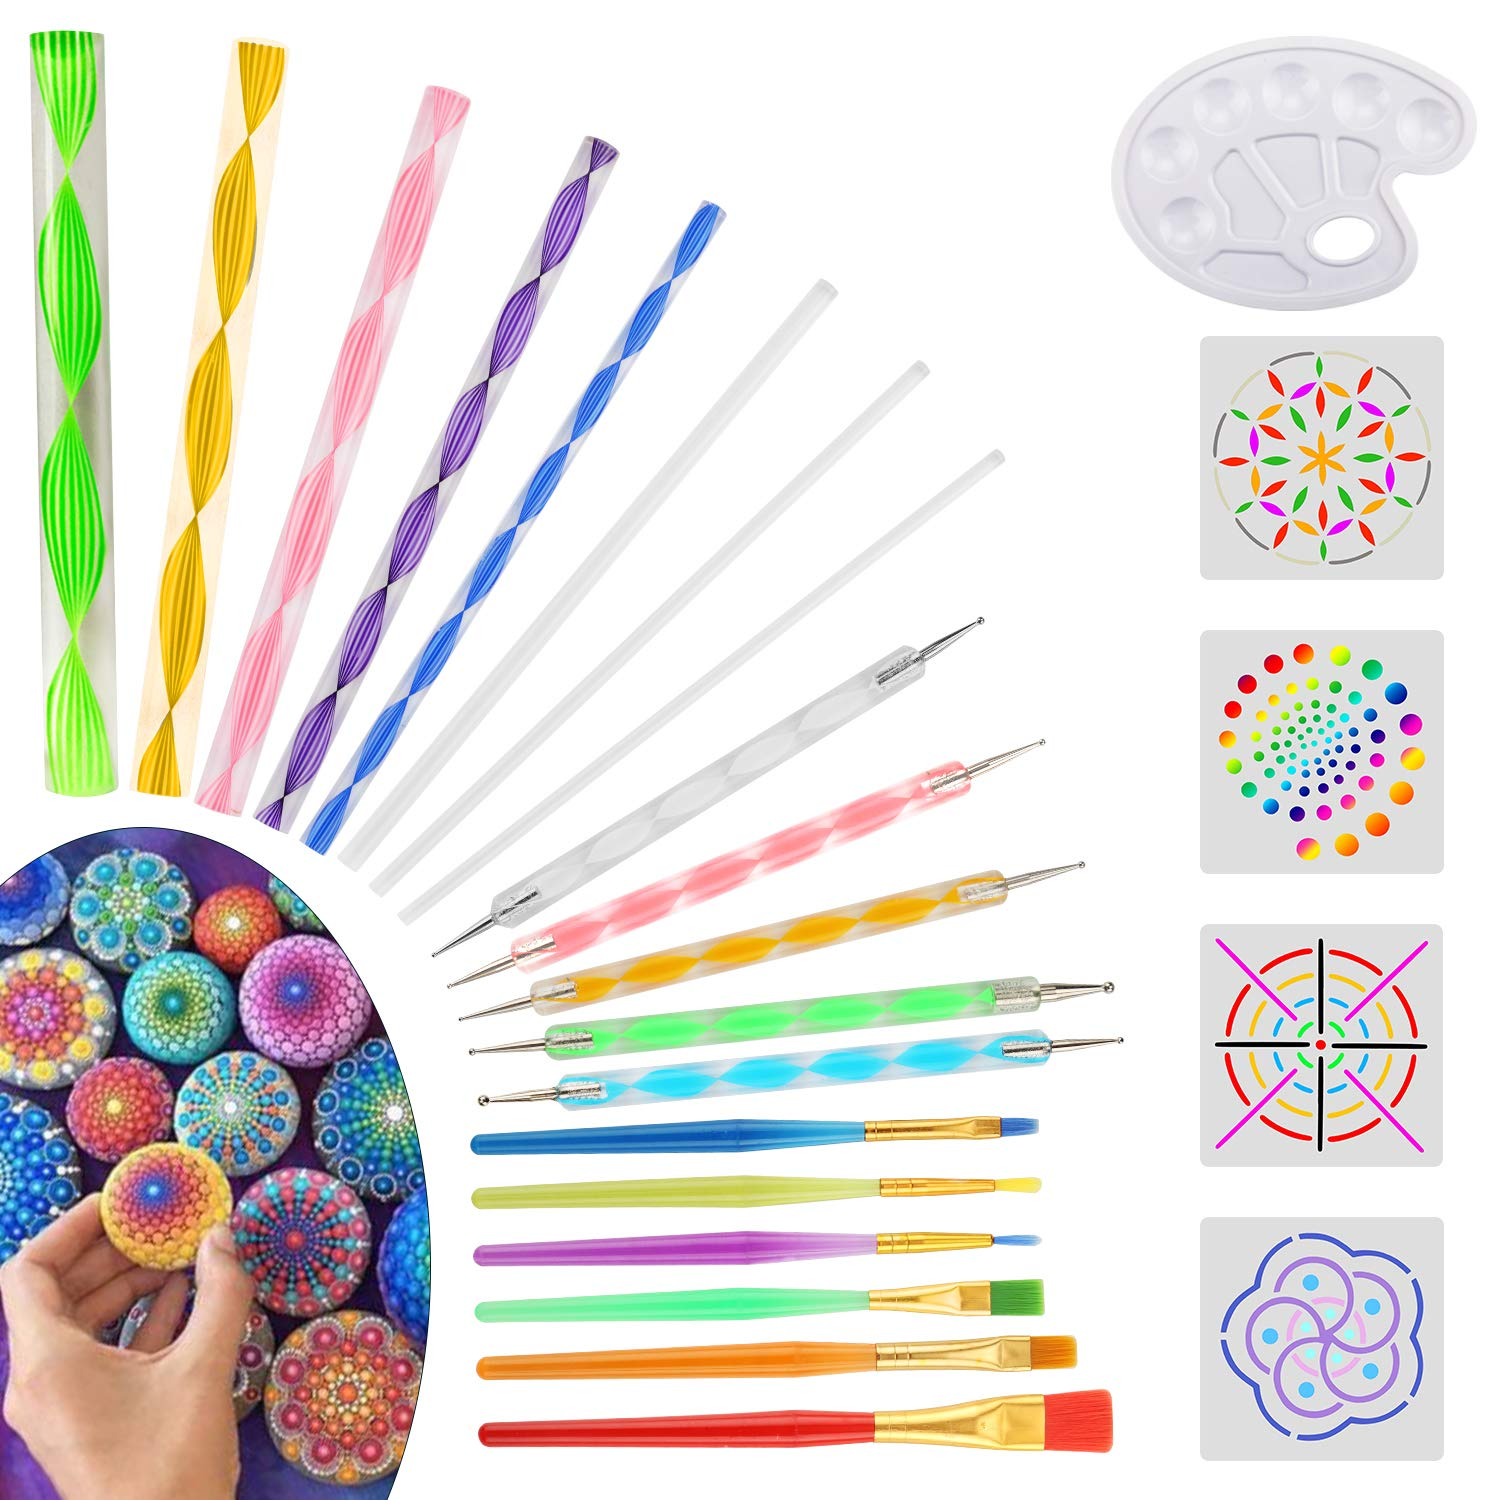 25 Pieces Mandala Dotting Tools for Painting Rocks, Coloring, Drawing and Drafting SHOVAN